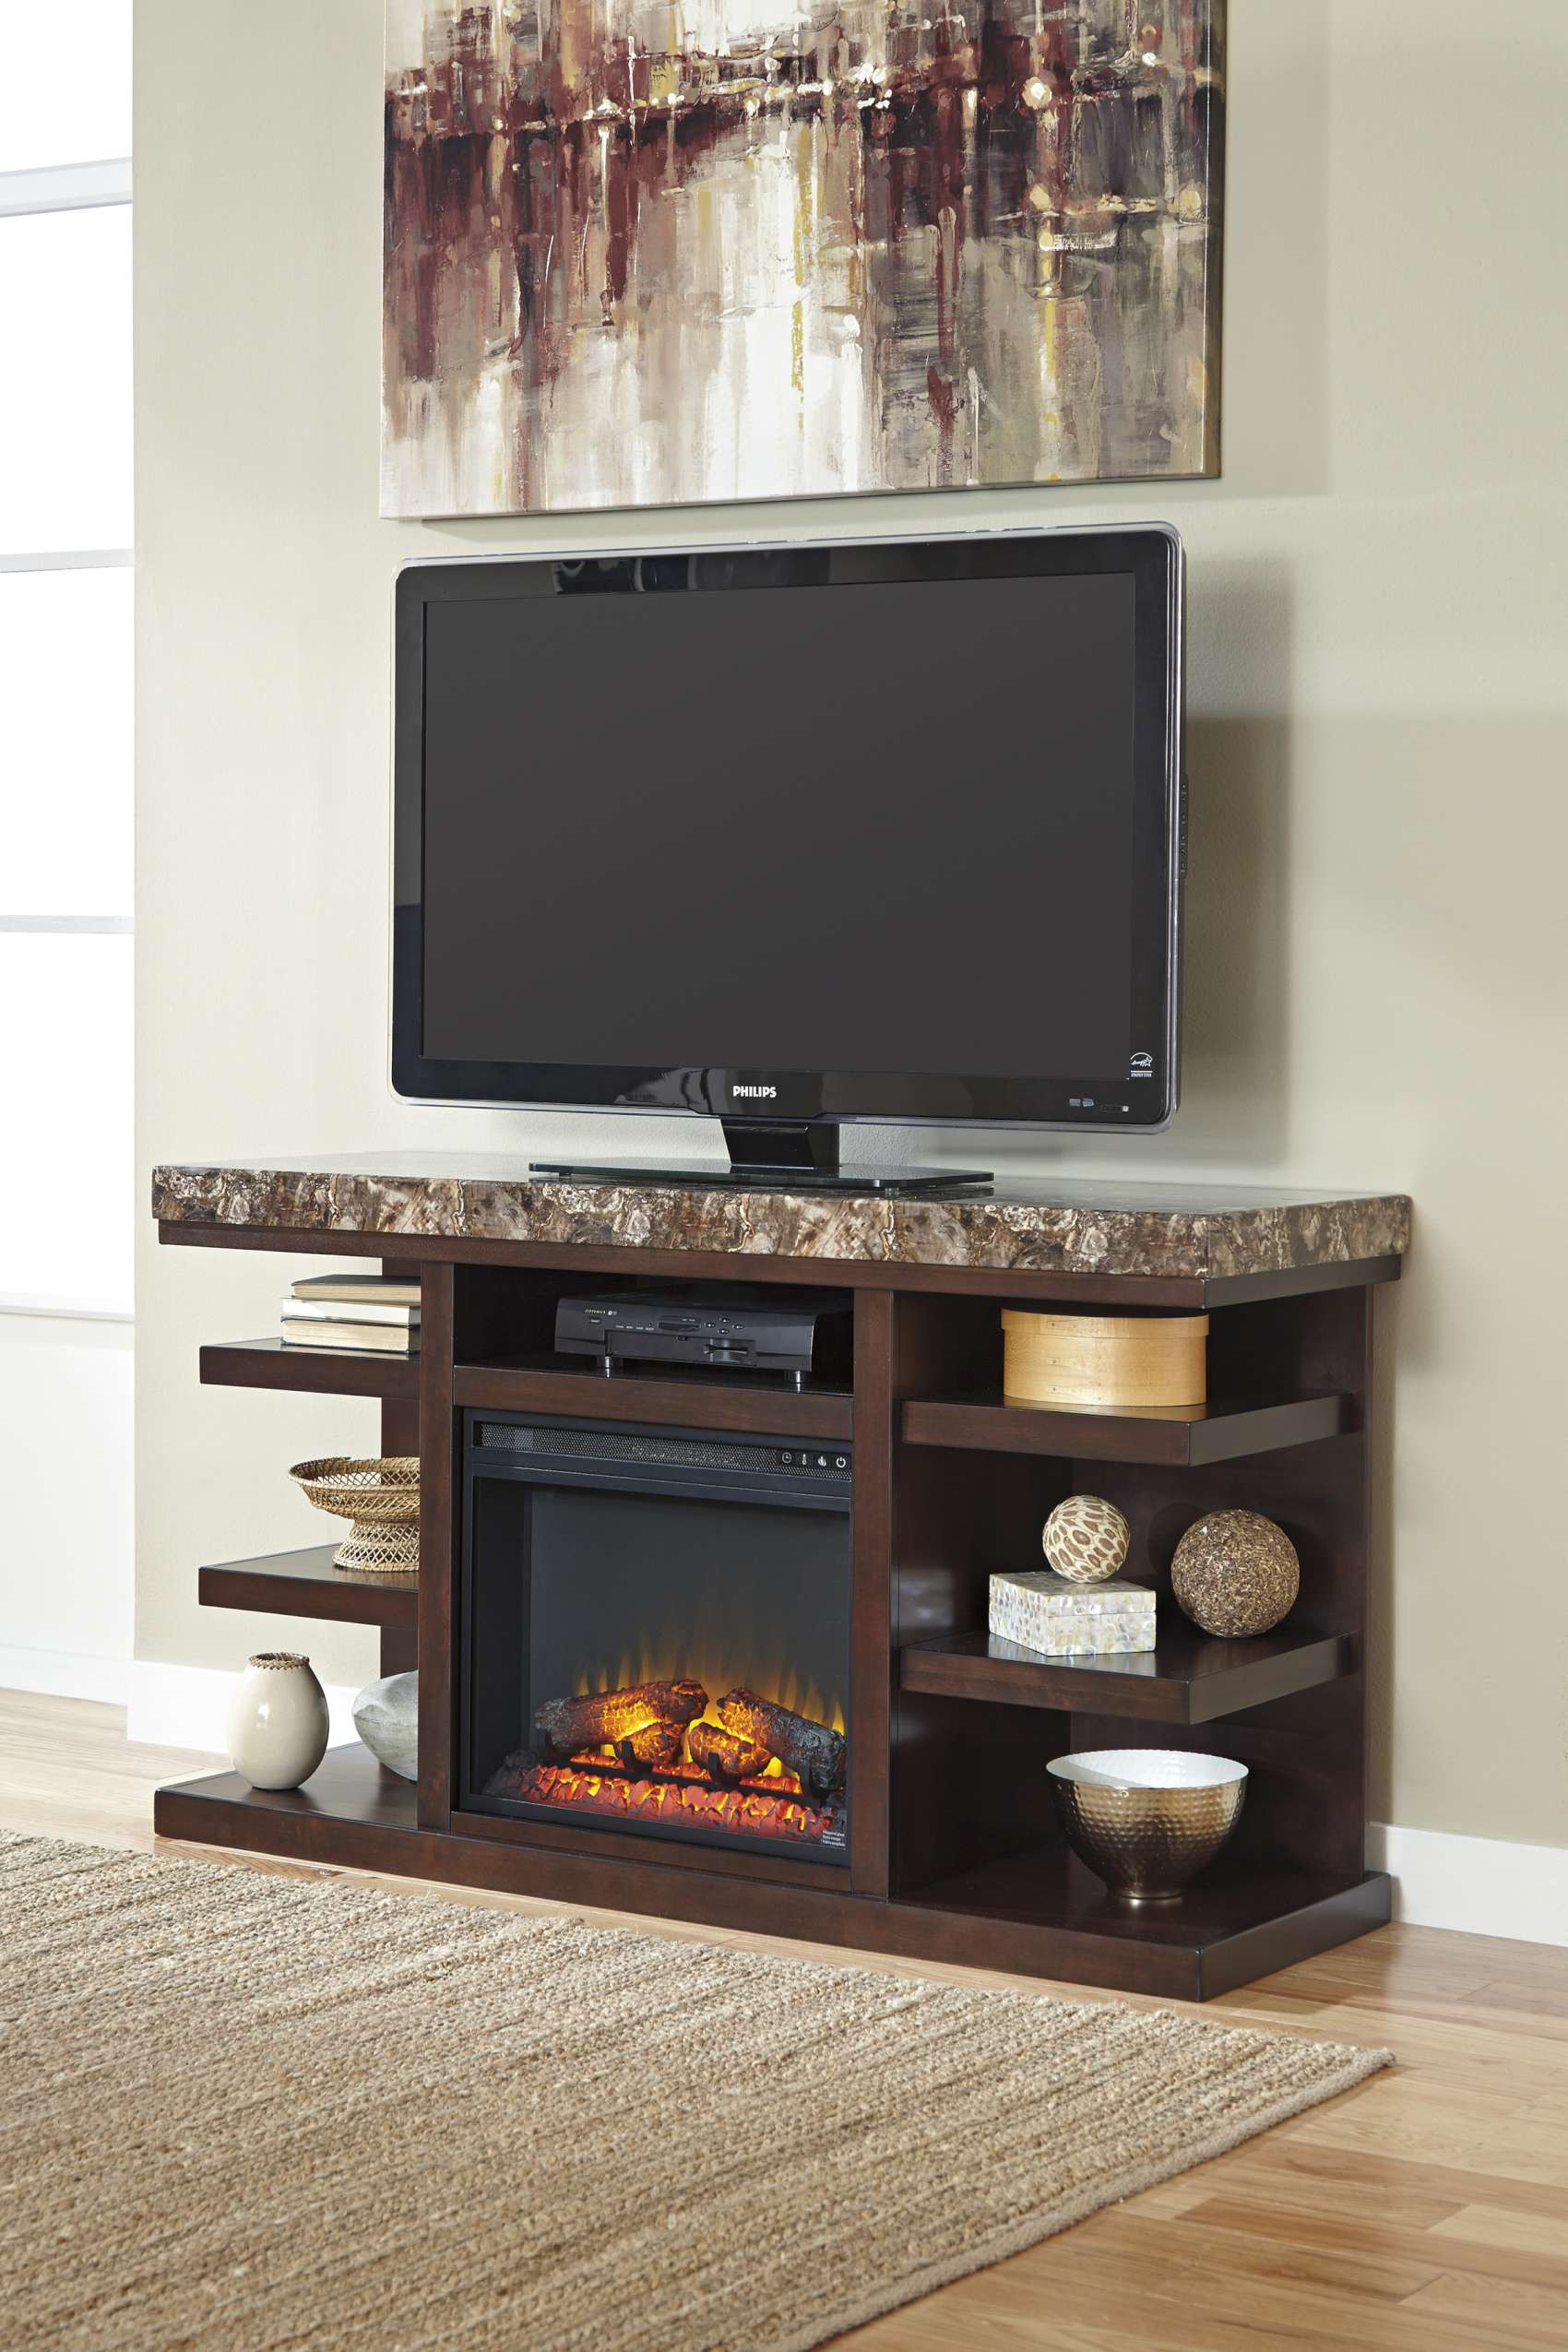 unique costco tv stands on cozy parkay floor with white baseboard and beige lowes rugs plus costco stand up paddle board also fireplace tv stand costco